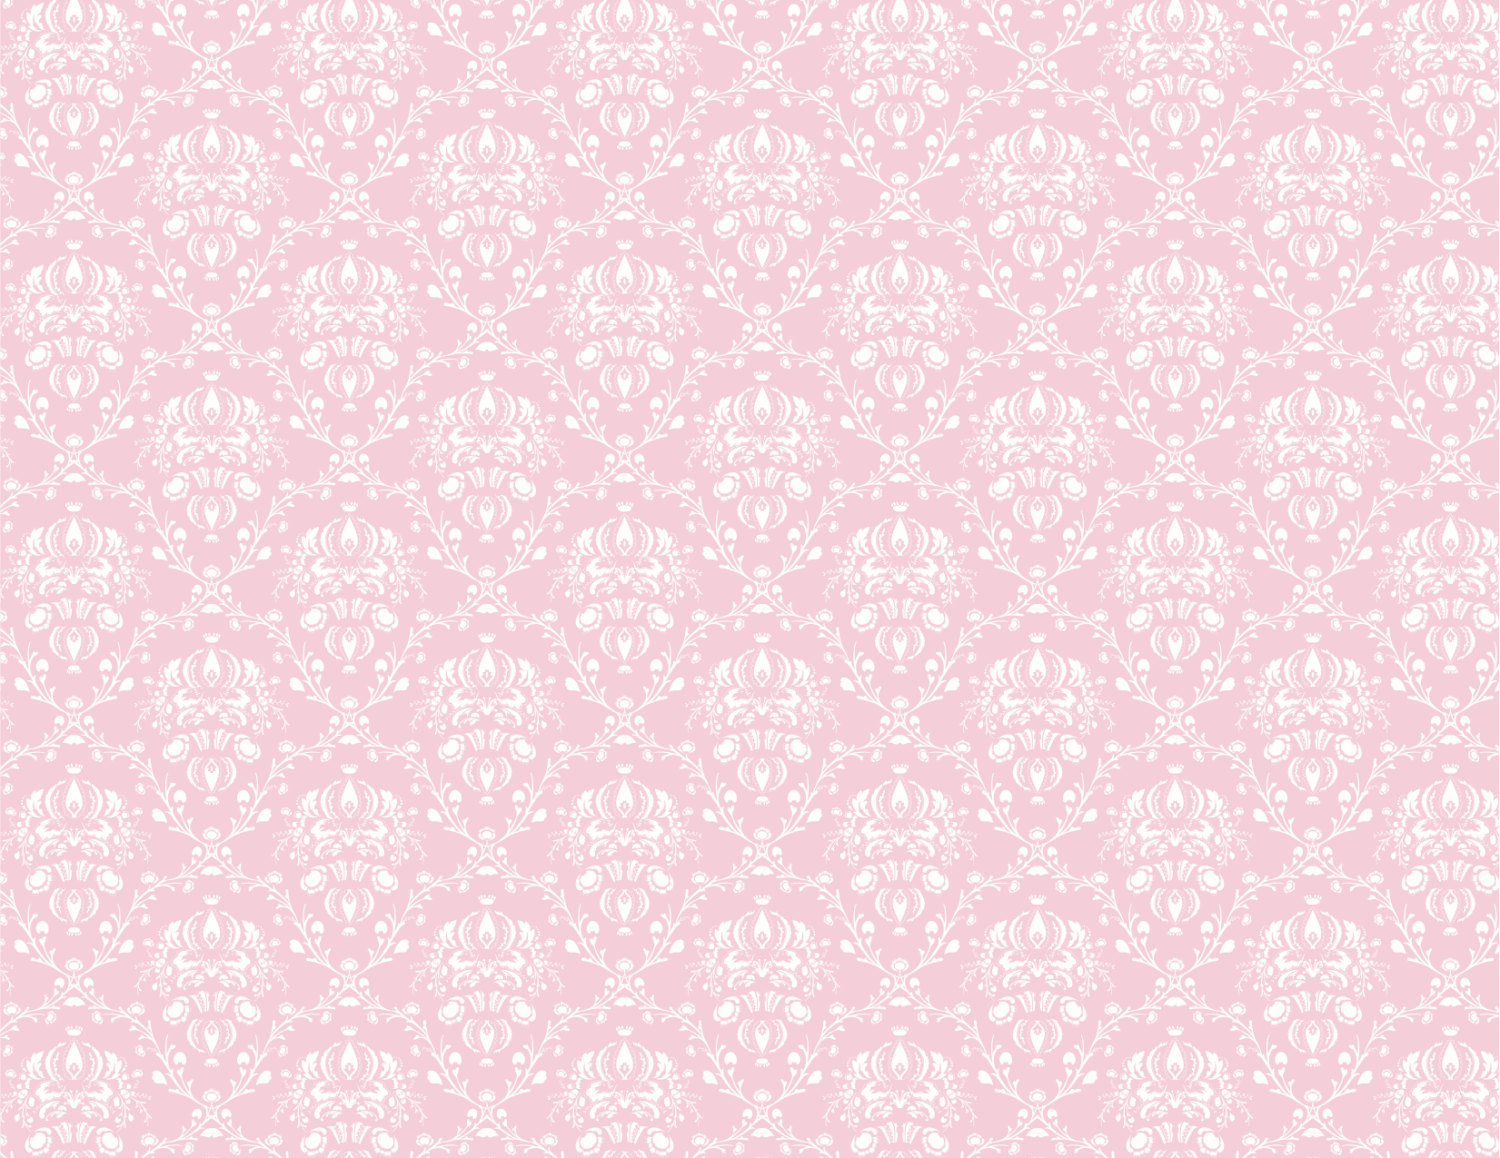 White Lace Backgrounds Vector 2  Vector Photoshop